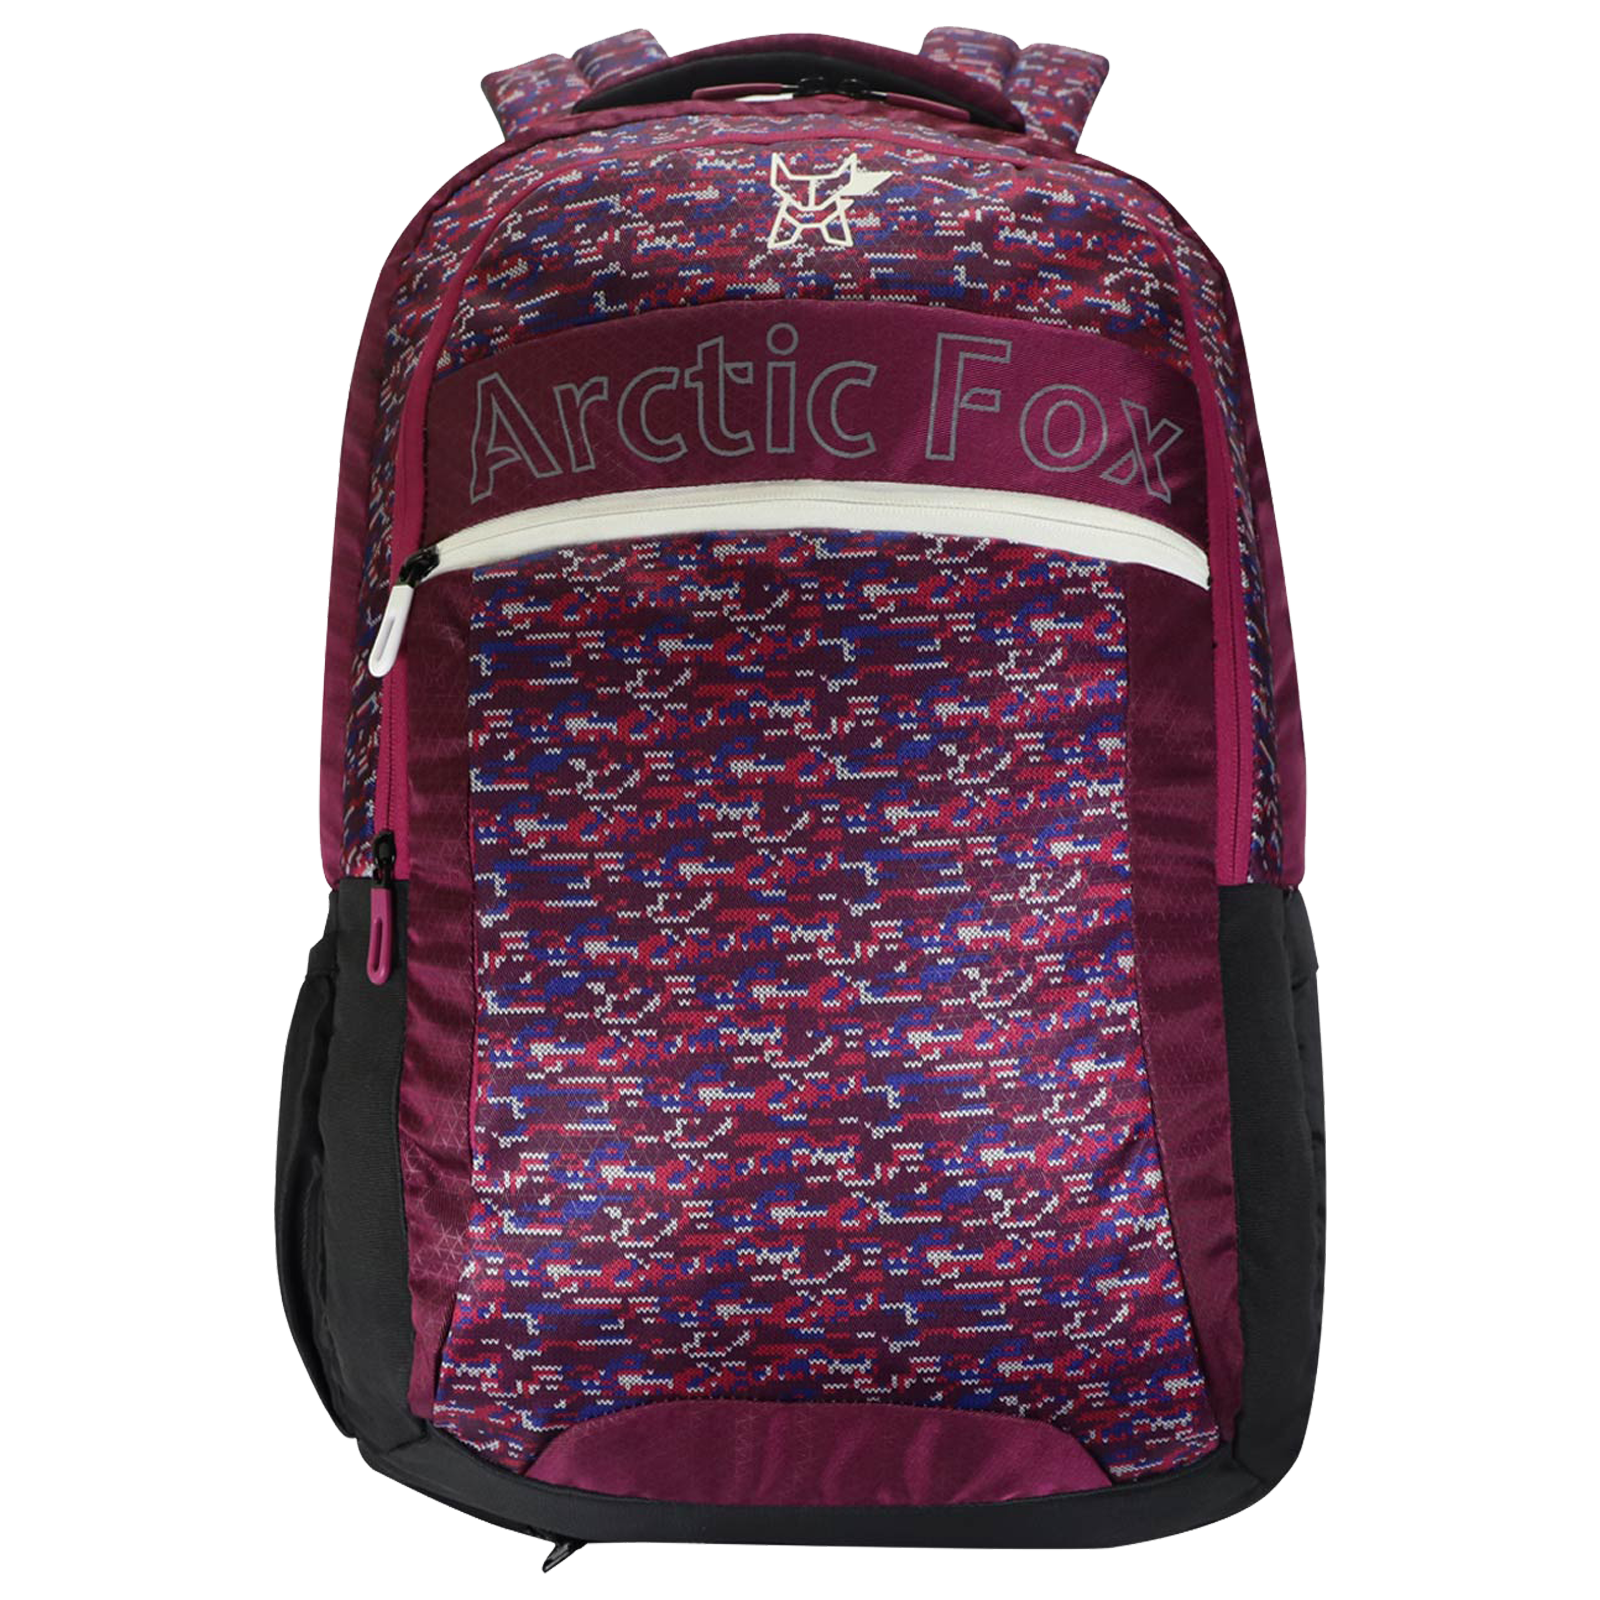 Arctic Fox Knitted Heather 38 Litres Polyester Backpack for 15 Inch Laptop (Adjustable Straps, FUNBPKRRRON095039, Purple)_1